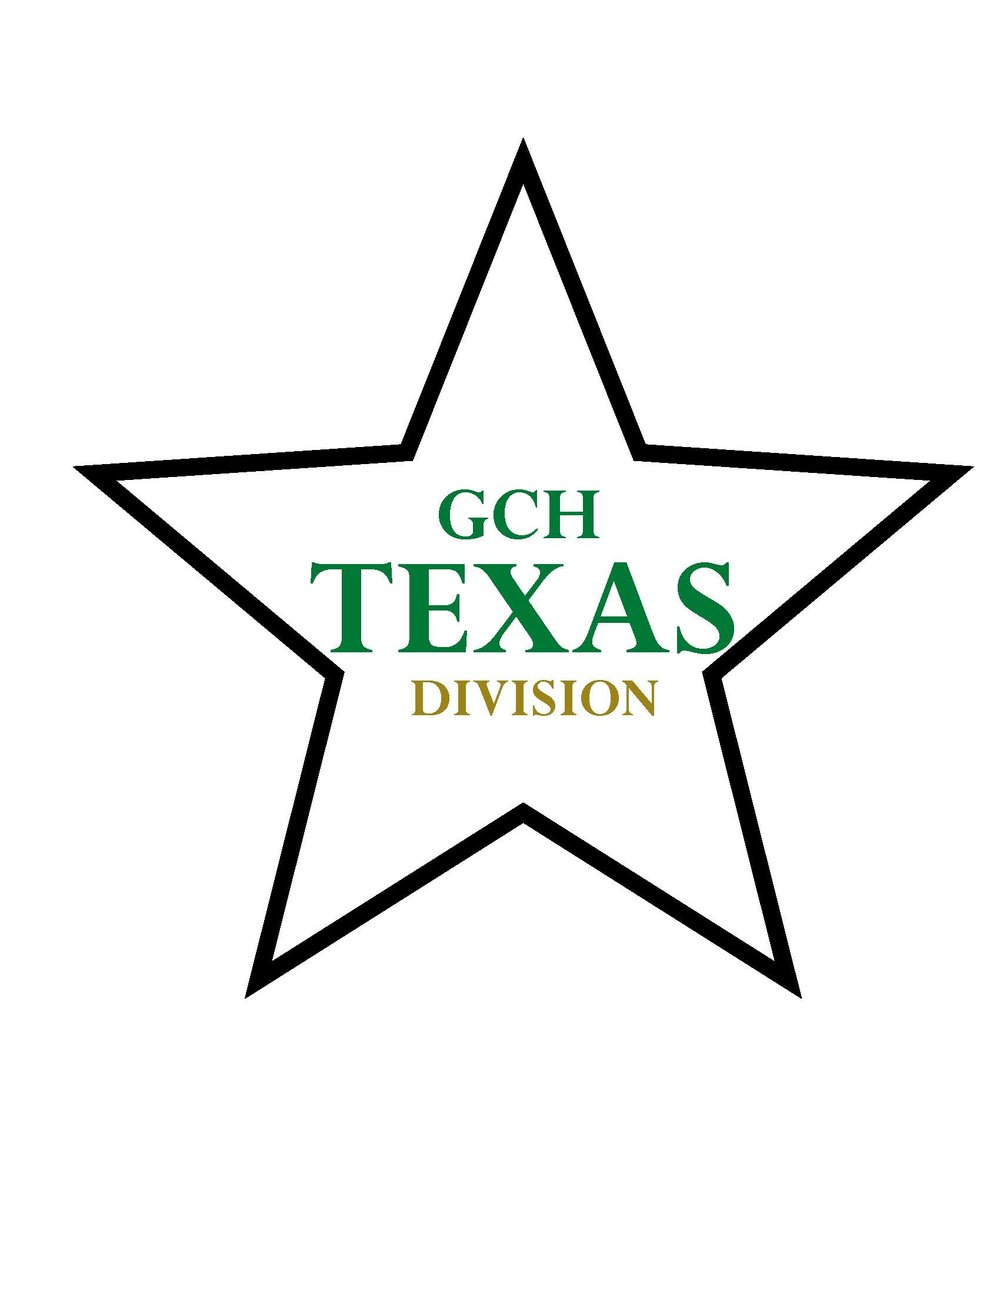 GCH Texas   - GCH's Texas Division has major project locations in Amarillo and Big Spring, TX.